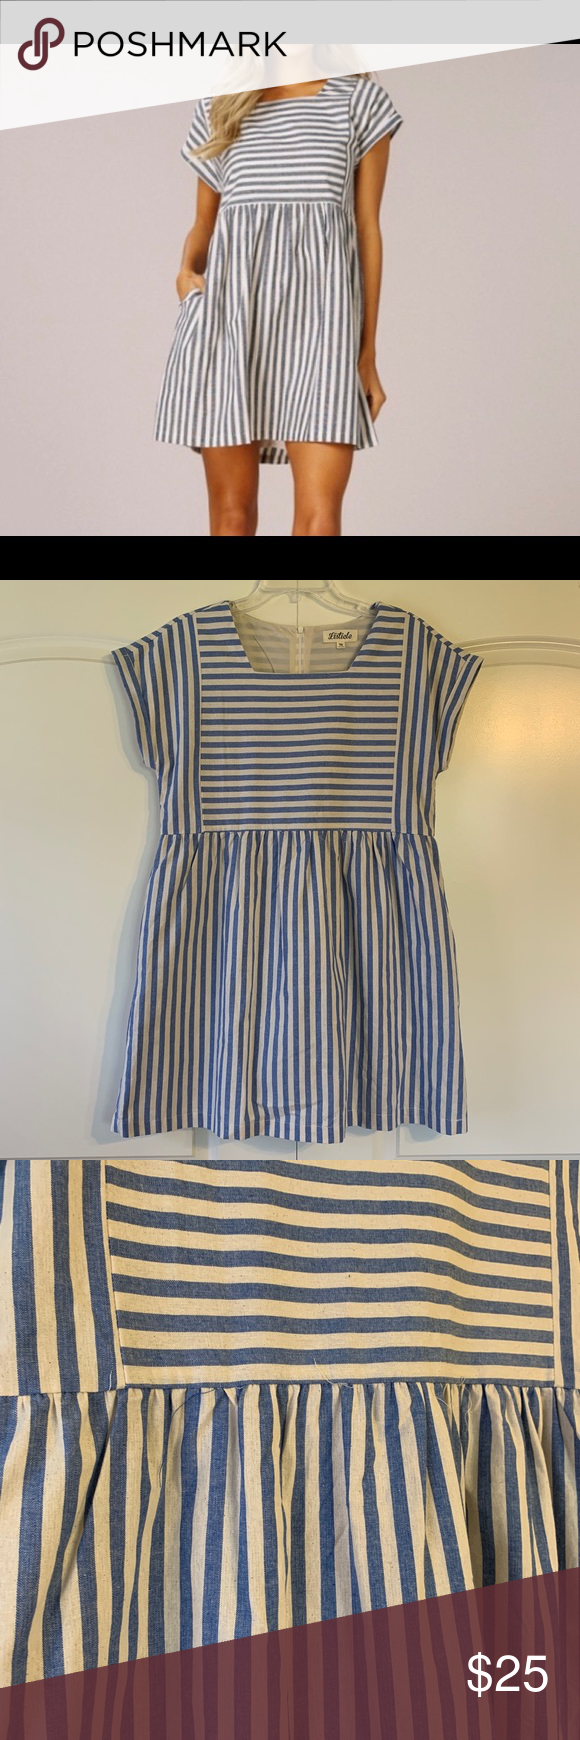 Listicle Striped Baby Doll Dress Doll dress, Womens